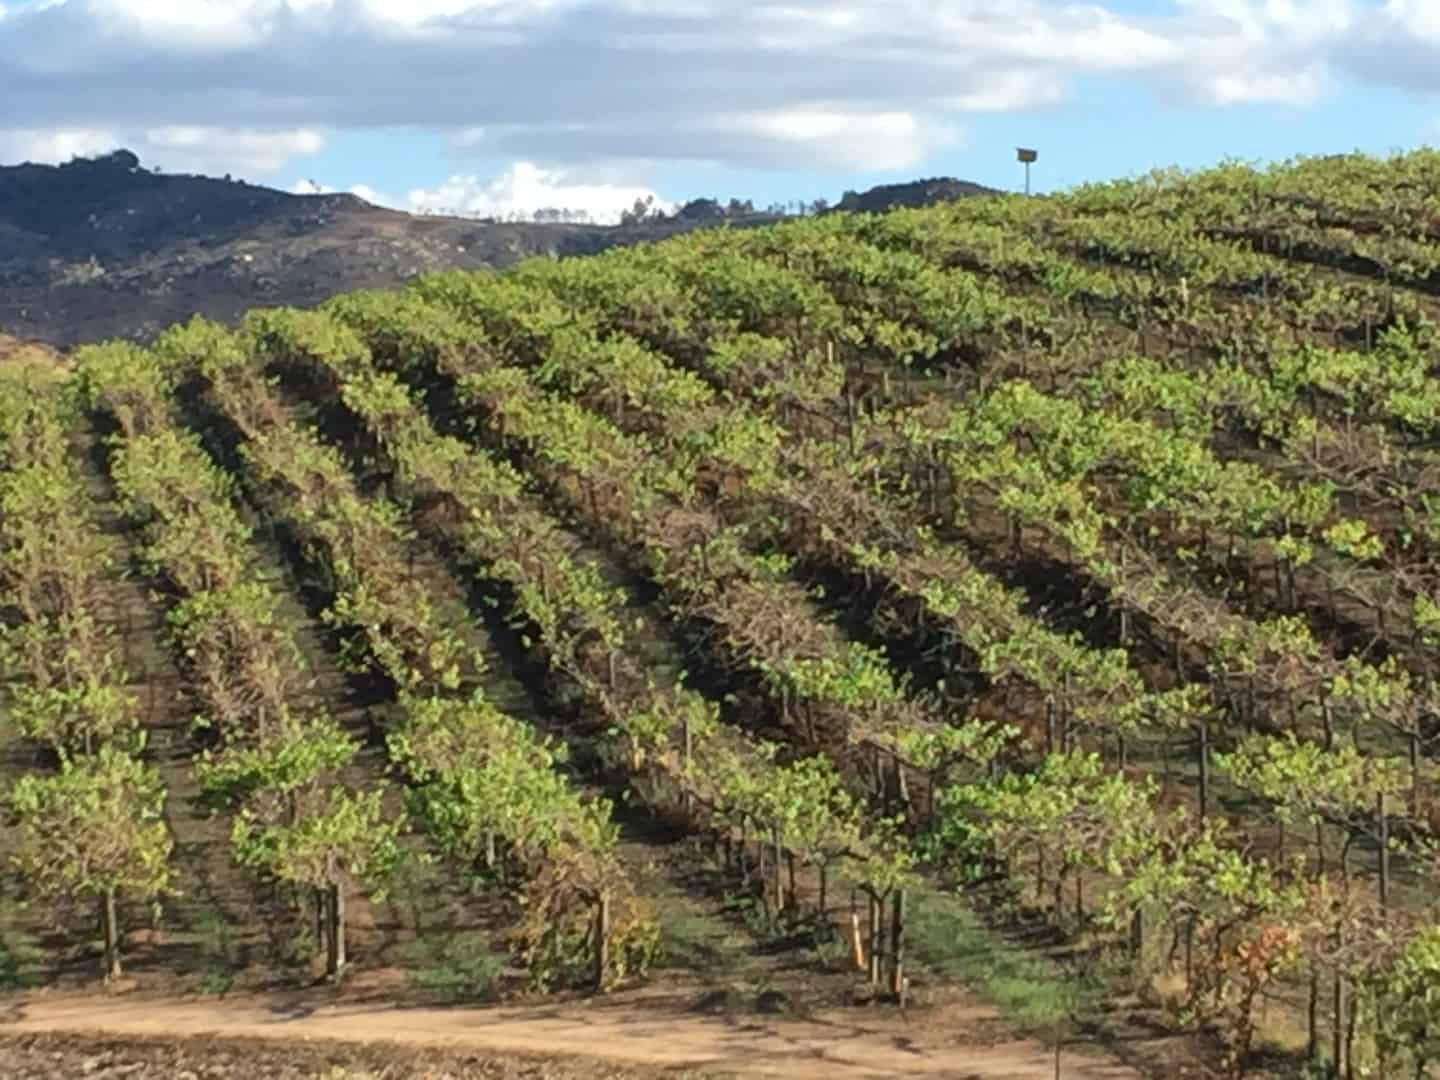 San Diego vineyards